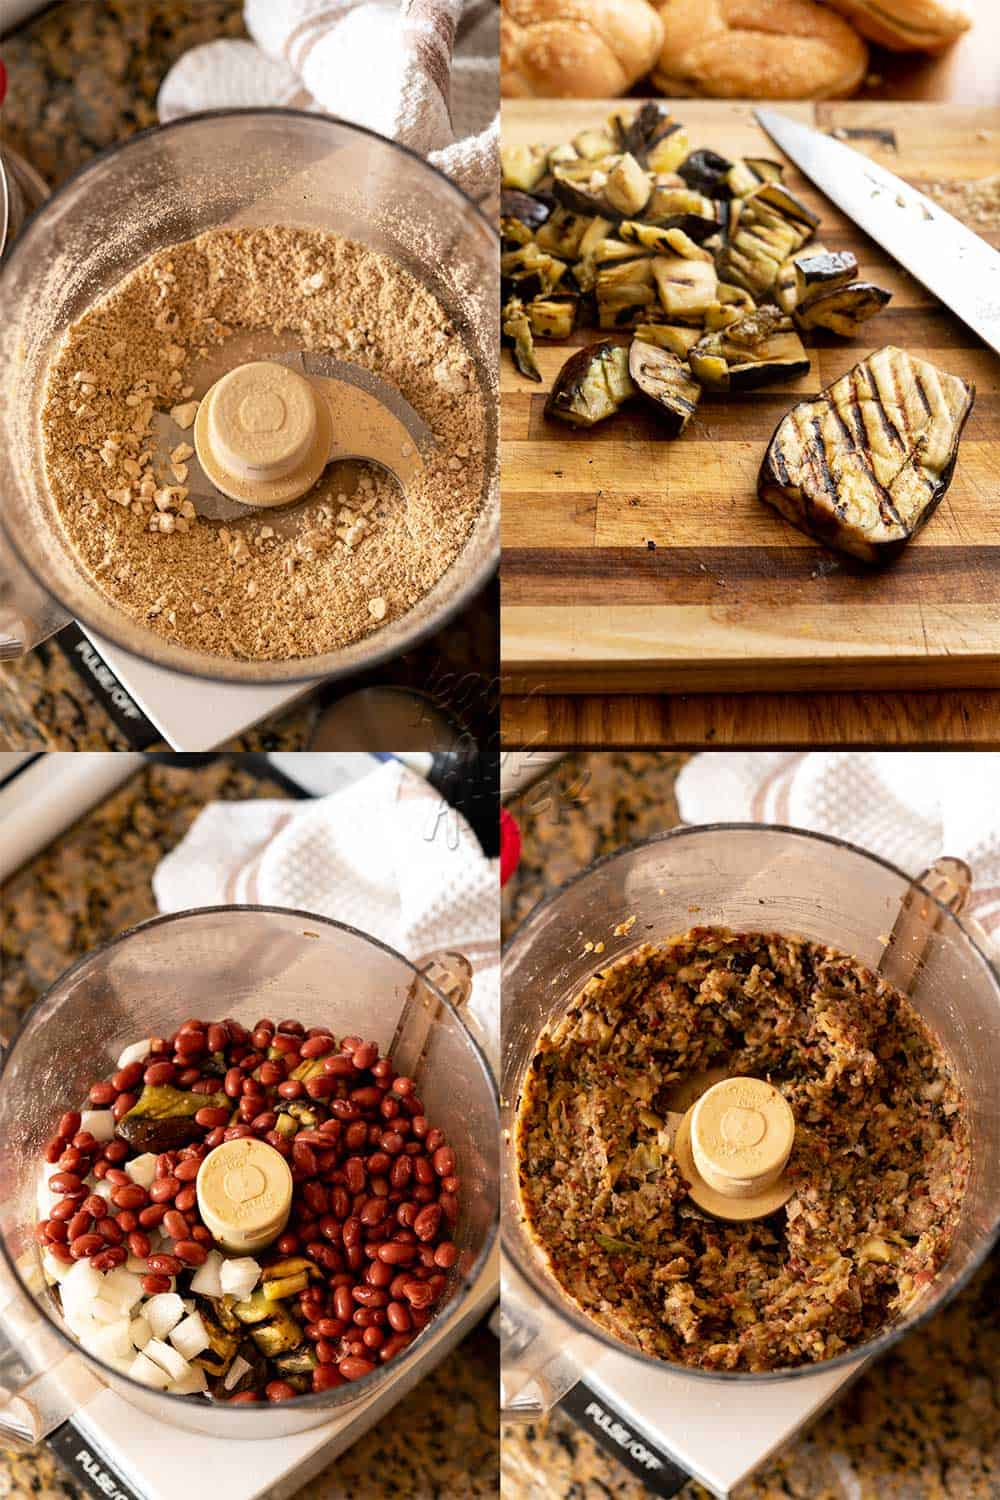 Image collage of using food processor to make eggplant burger patties